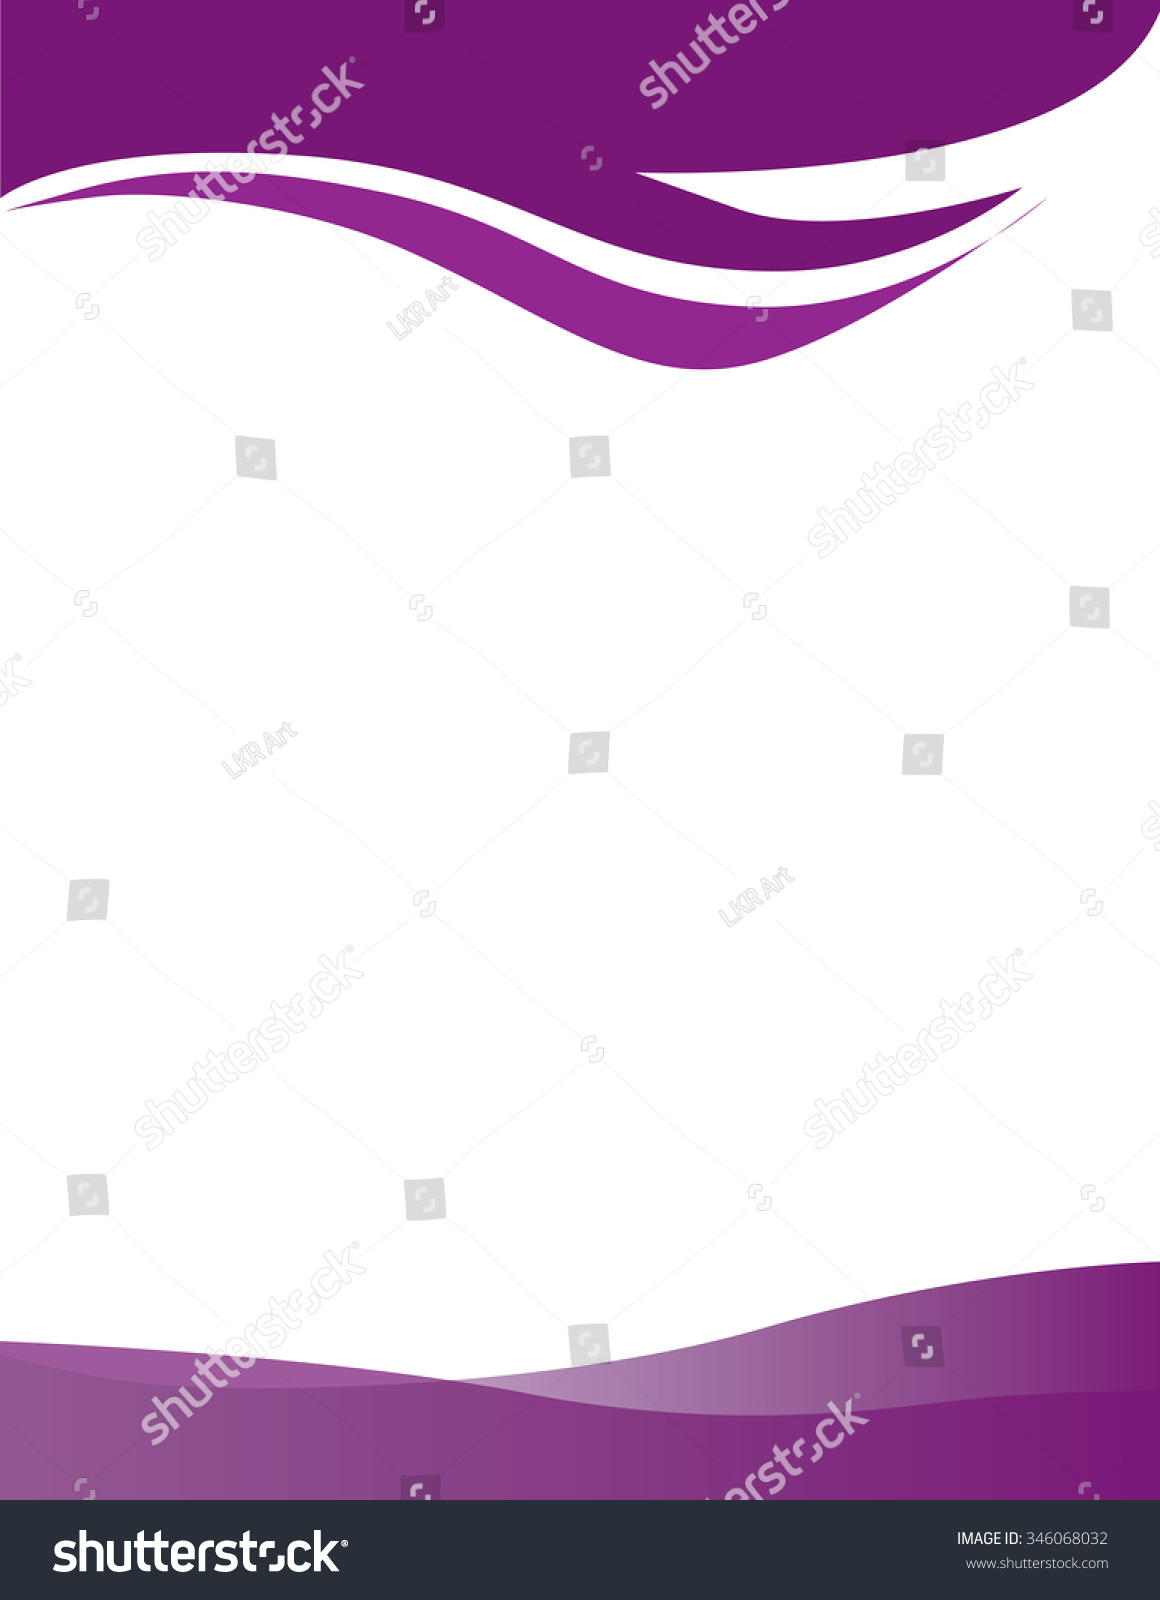 purple swirl background stock - photo #7